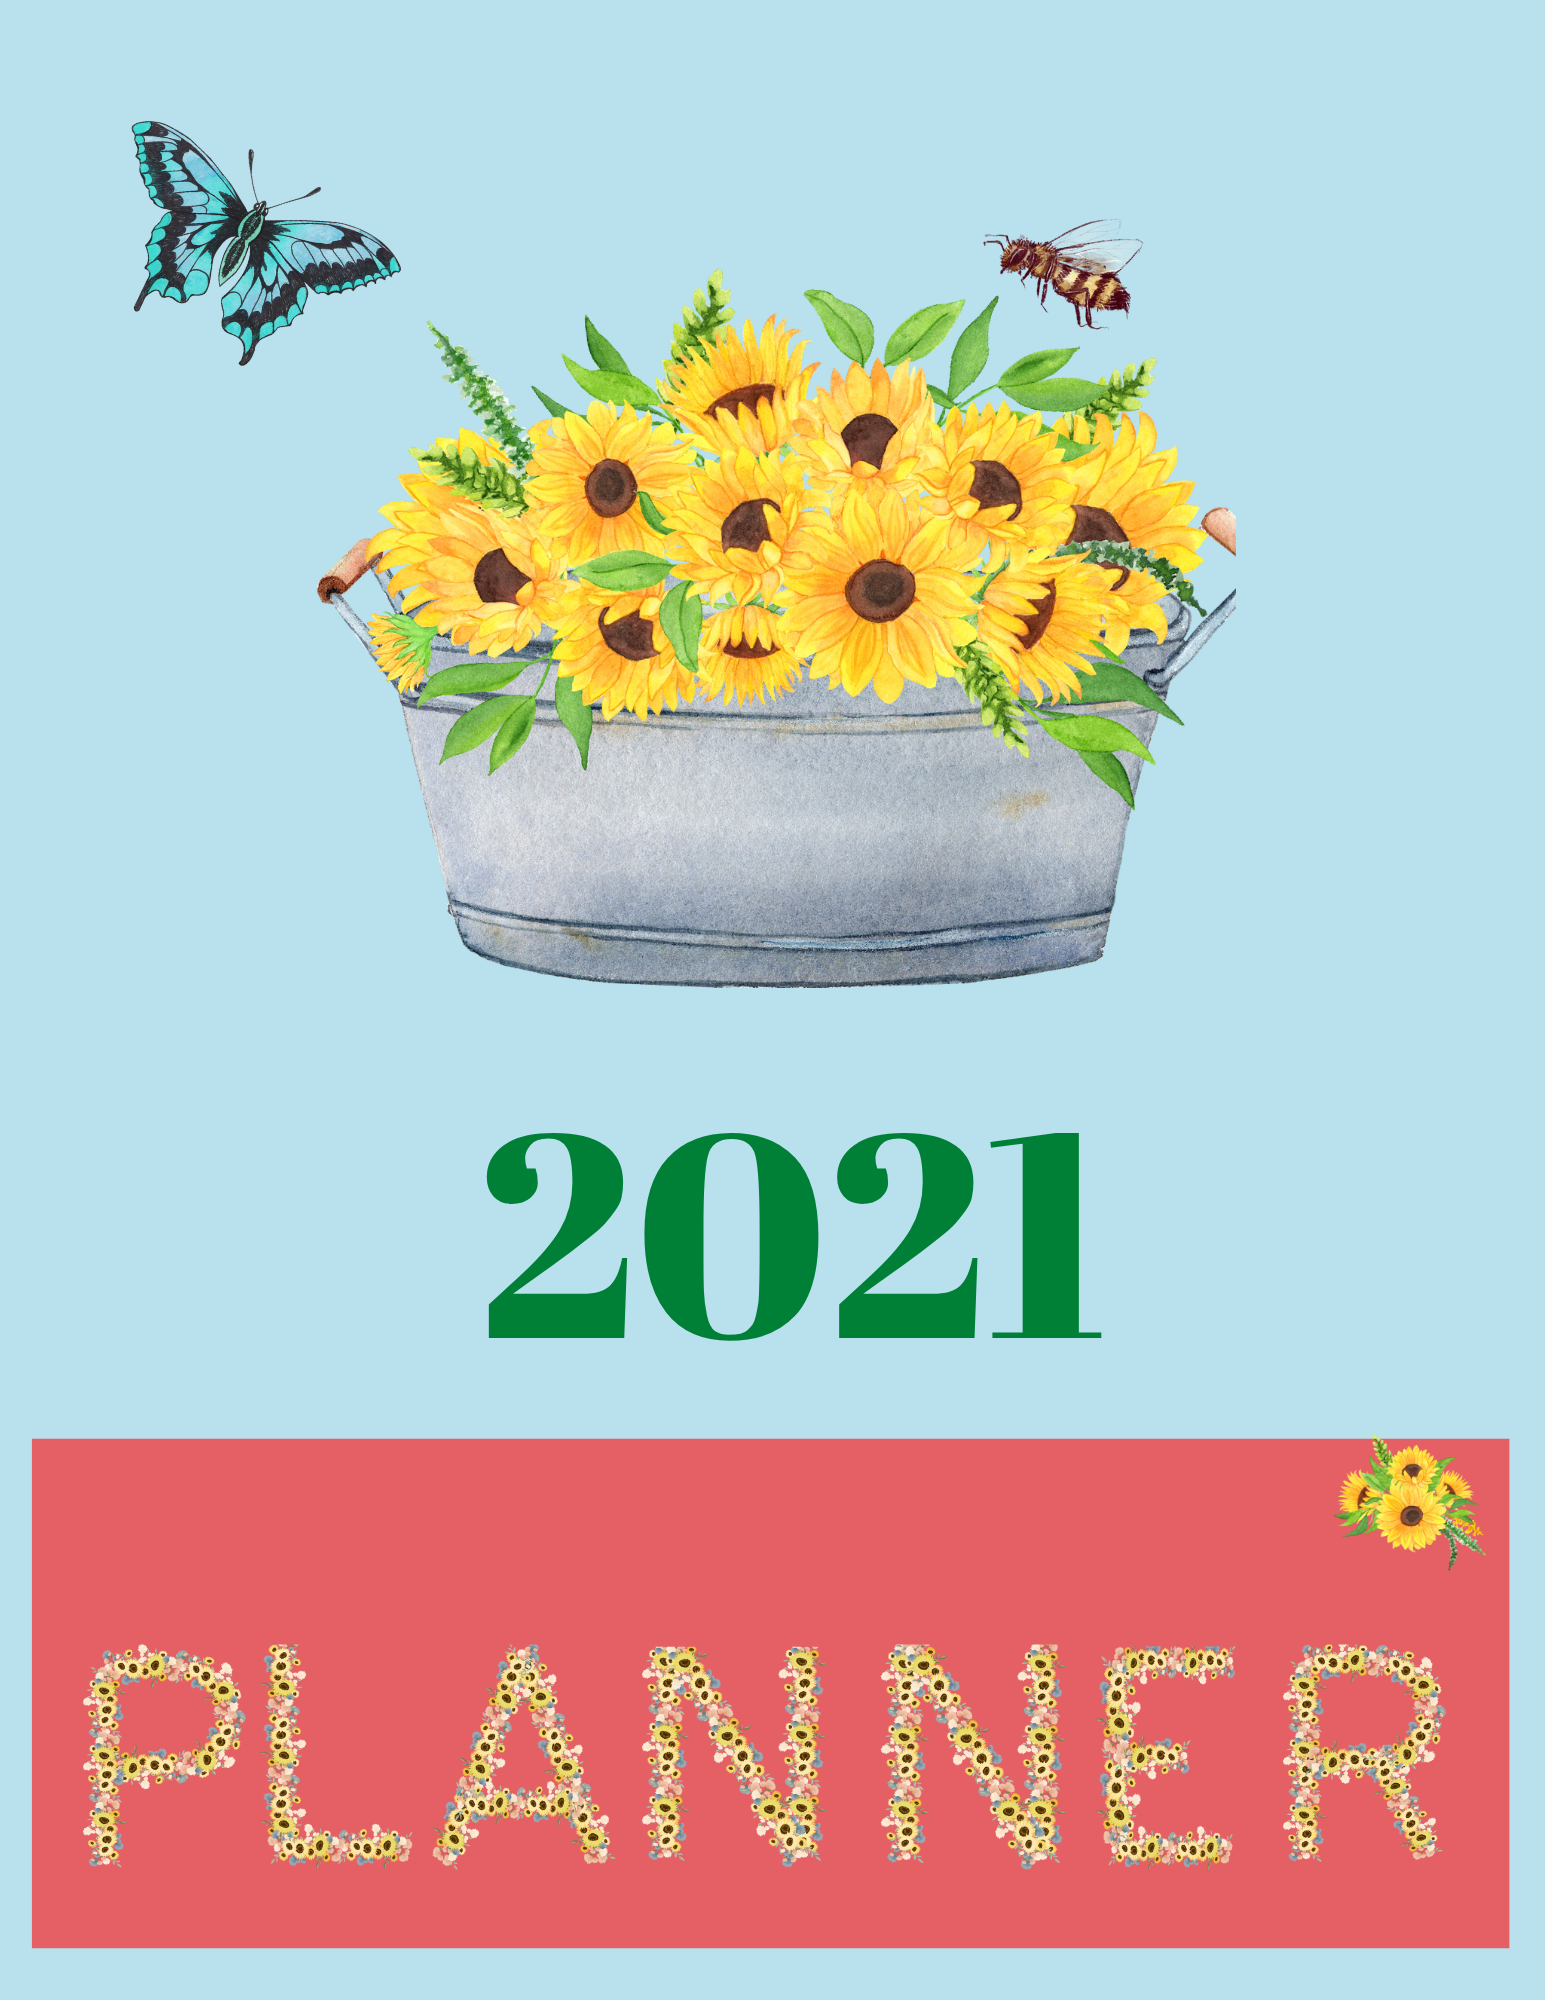 Downloadable Sunflower Planner Calendar